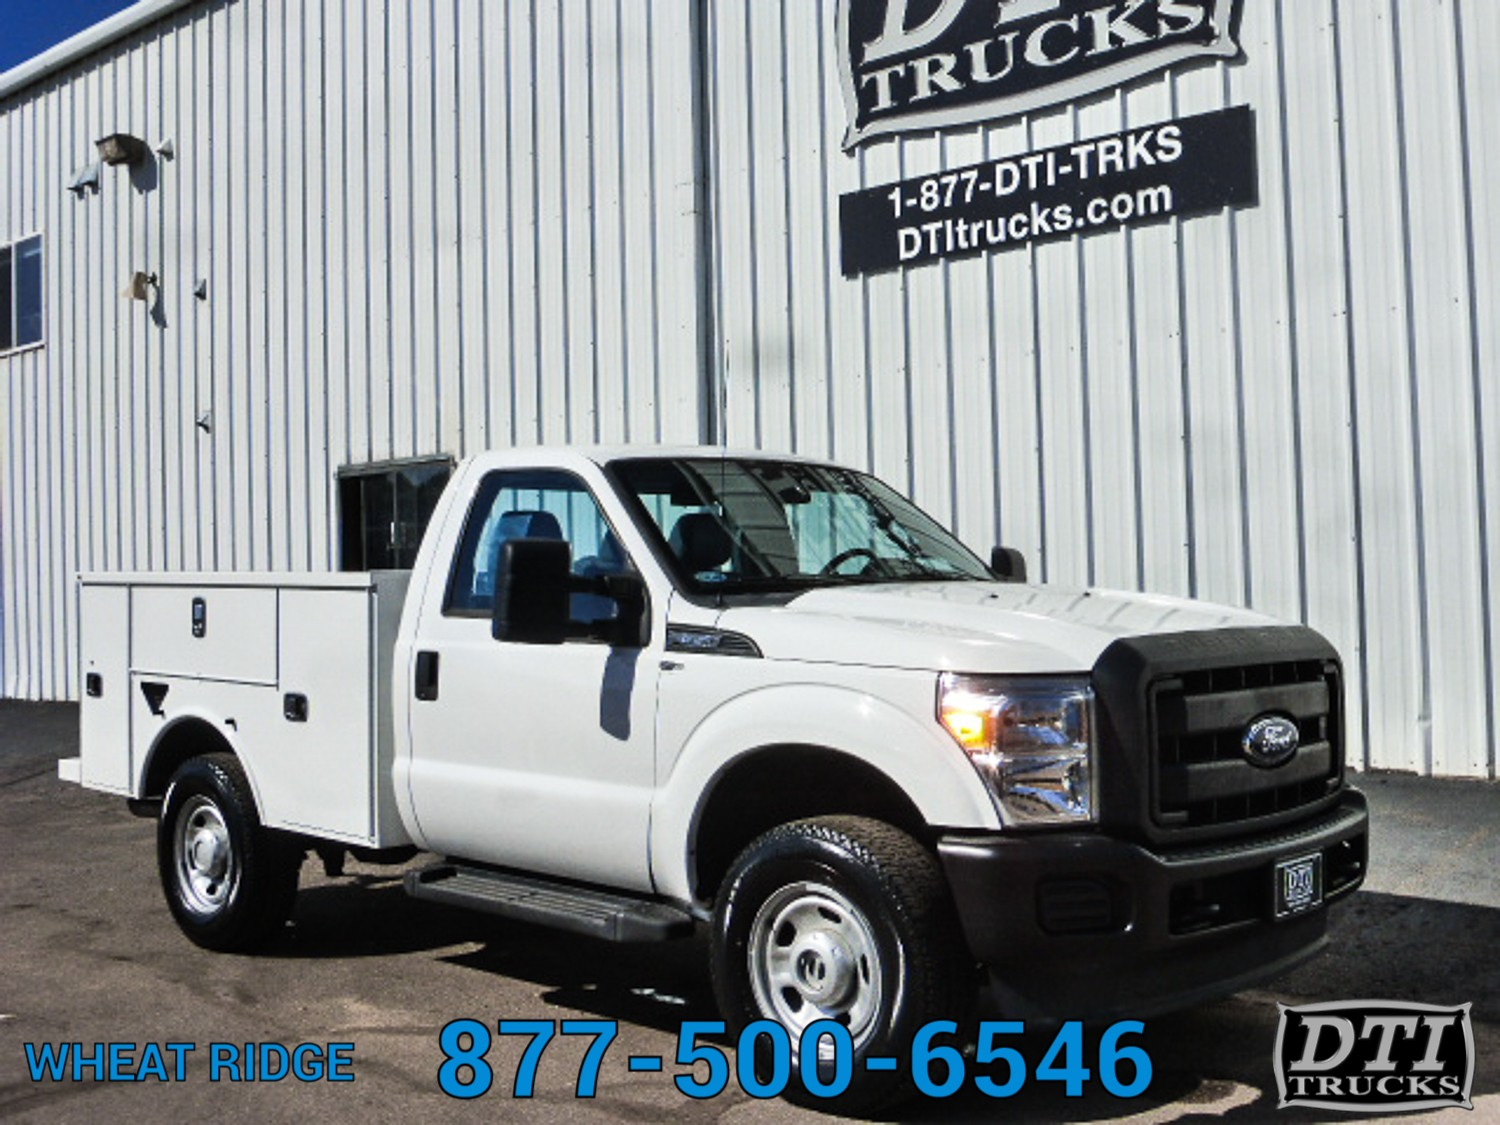 Heavy Duty Truck Dealership In Colorado 2004 Ford F350 Super Remote Start 2014